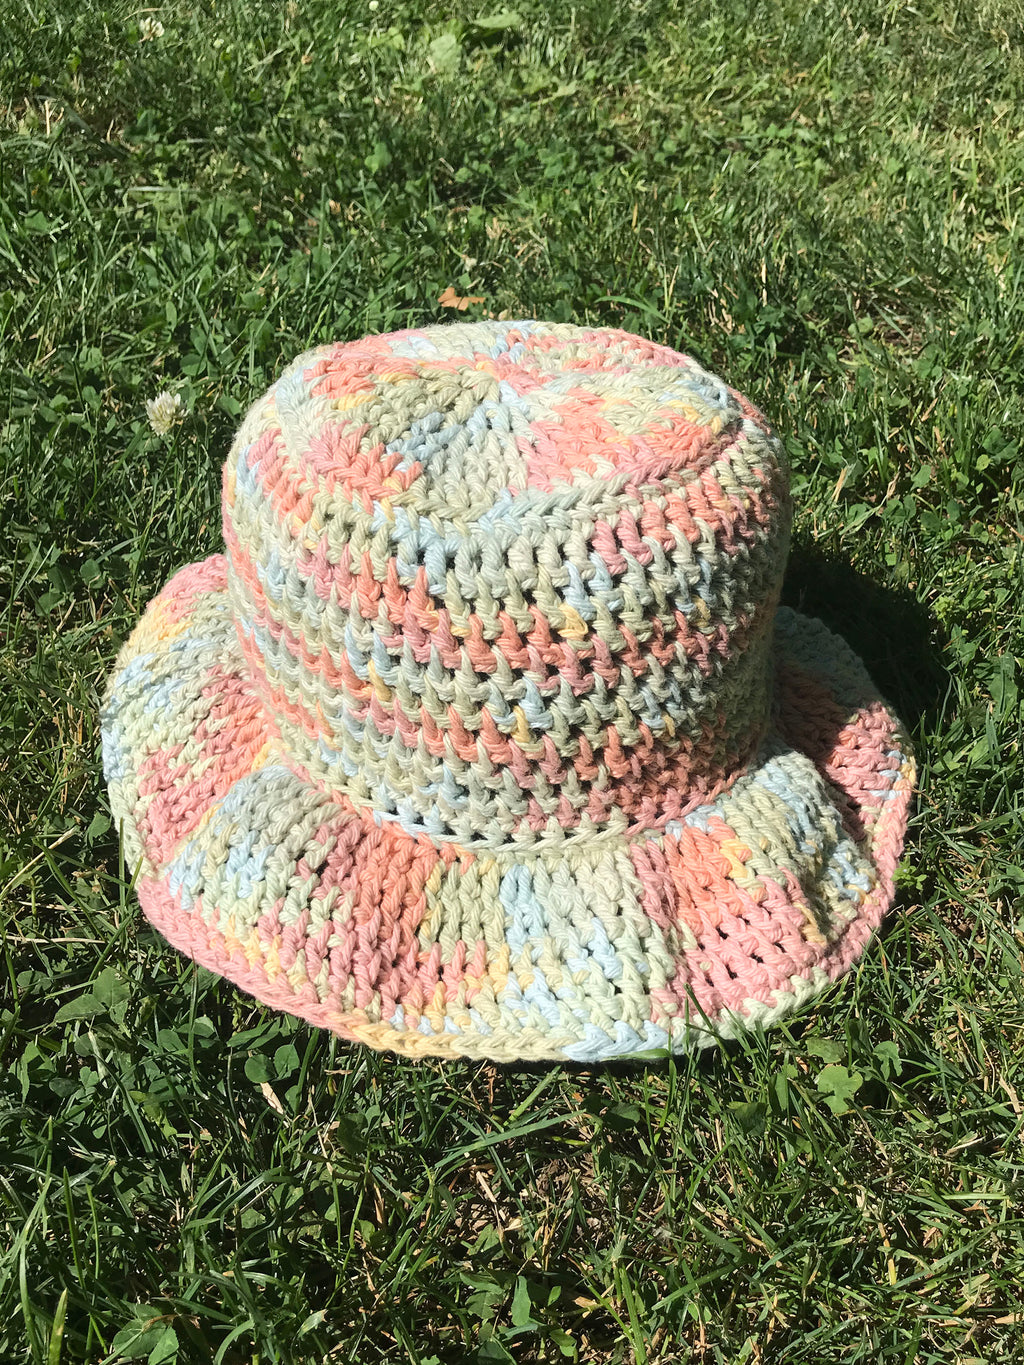 handmade crochet bucket hat in pastel rainbow spacedye space dye tie dye pattern100% cotton yarn wavy ruffle brim spring summer hat etsy depop pintrest urban outfitters zara aesthetic trend 90s y2k buy for sale cost ideas measurements size material dimensions designs easy pink blue green yellow hand crocheted womens adult adults size